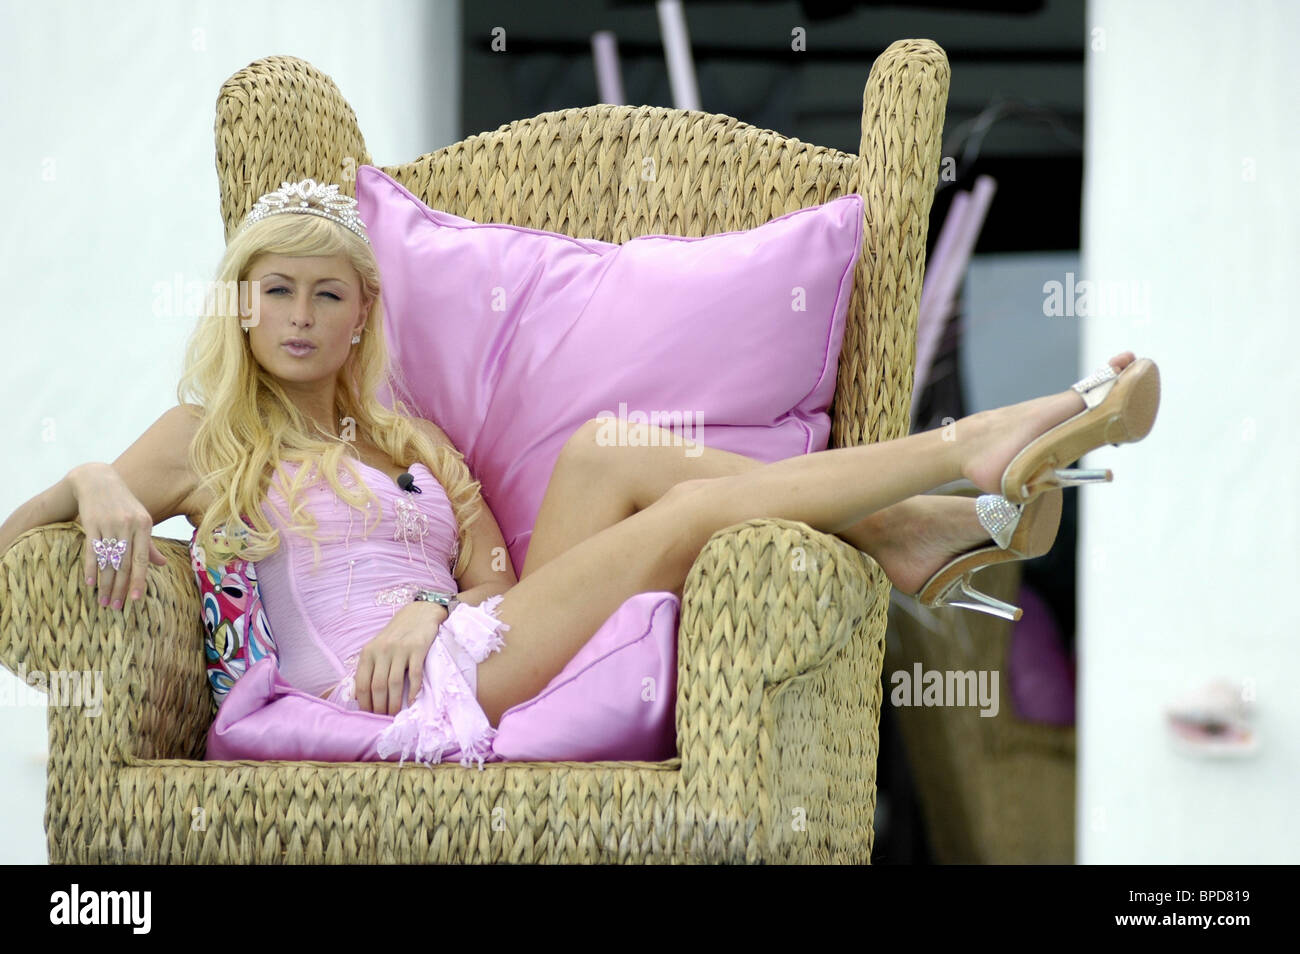 R-rated comedy Pledge This! starring Paris Hilton released in Russia under title Blonde in Chocolate - Stock Image